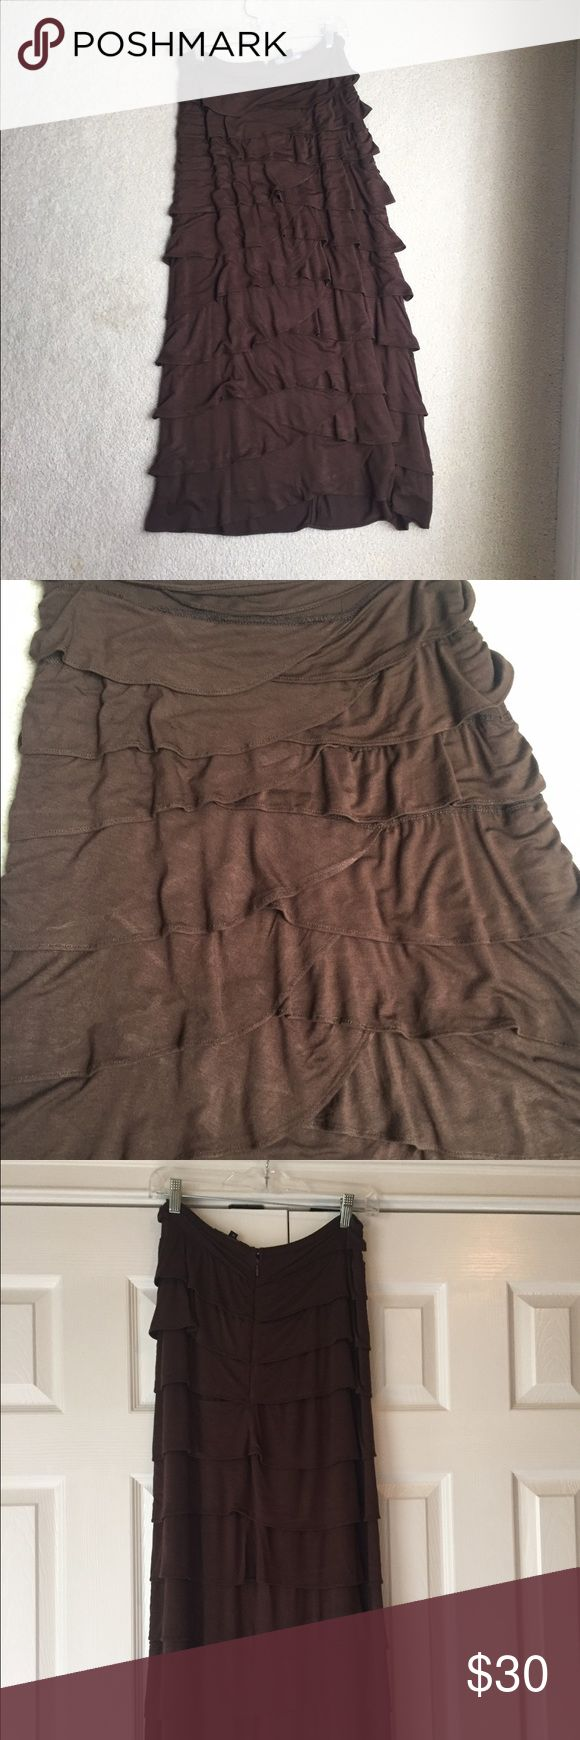 Mermaid skirt Chocolate brown cotton layered mermaid skirt. Super flattering. Looks great with a short denim jacket and top. Great for fall! Works well with cute sandals in the spring too! Length is about to the ankle. Machine washable and hang to dry. Worn only a few times. Excellent condition. Purchased from a cute boutique at the beach. Skirts